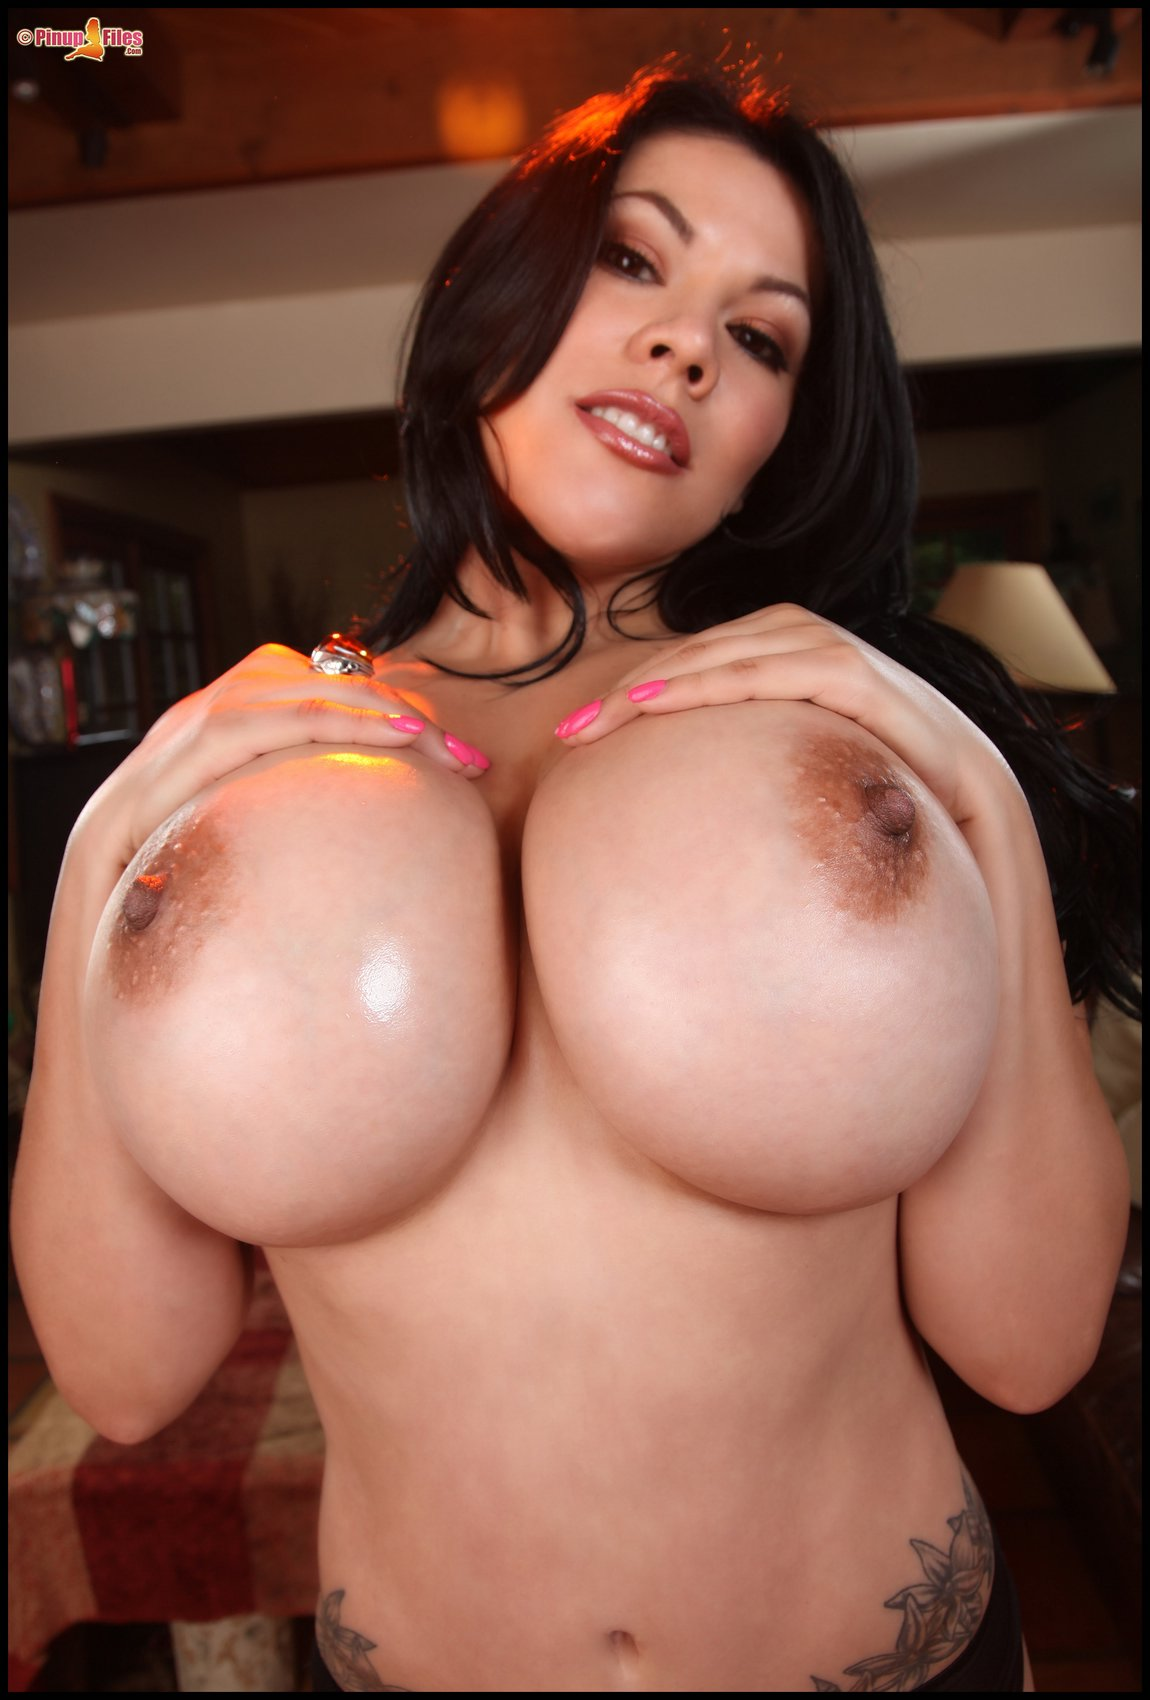 Ana Rica Posing And Showing Off Her Huge Oiled Boobs - My -6391